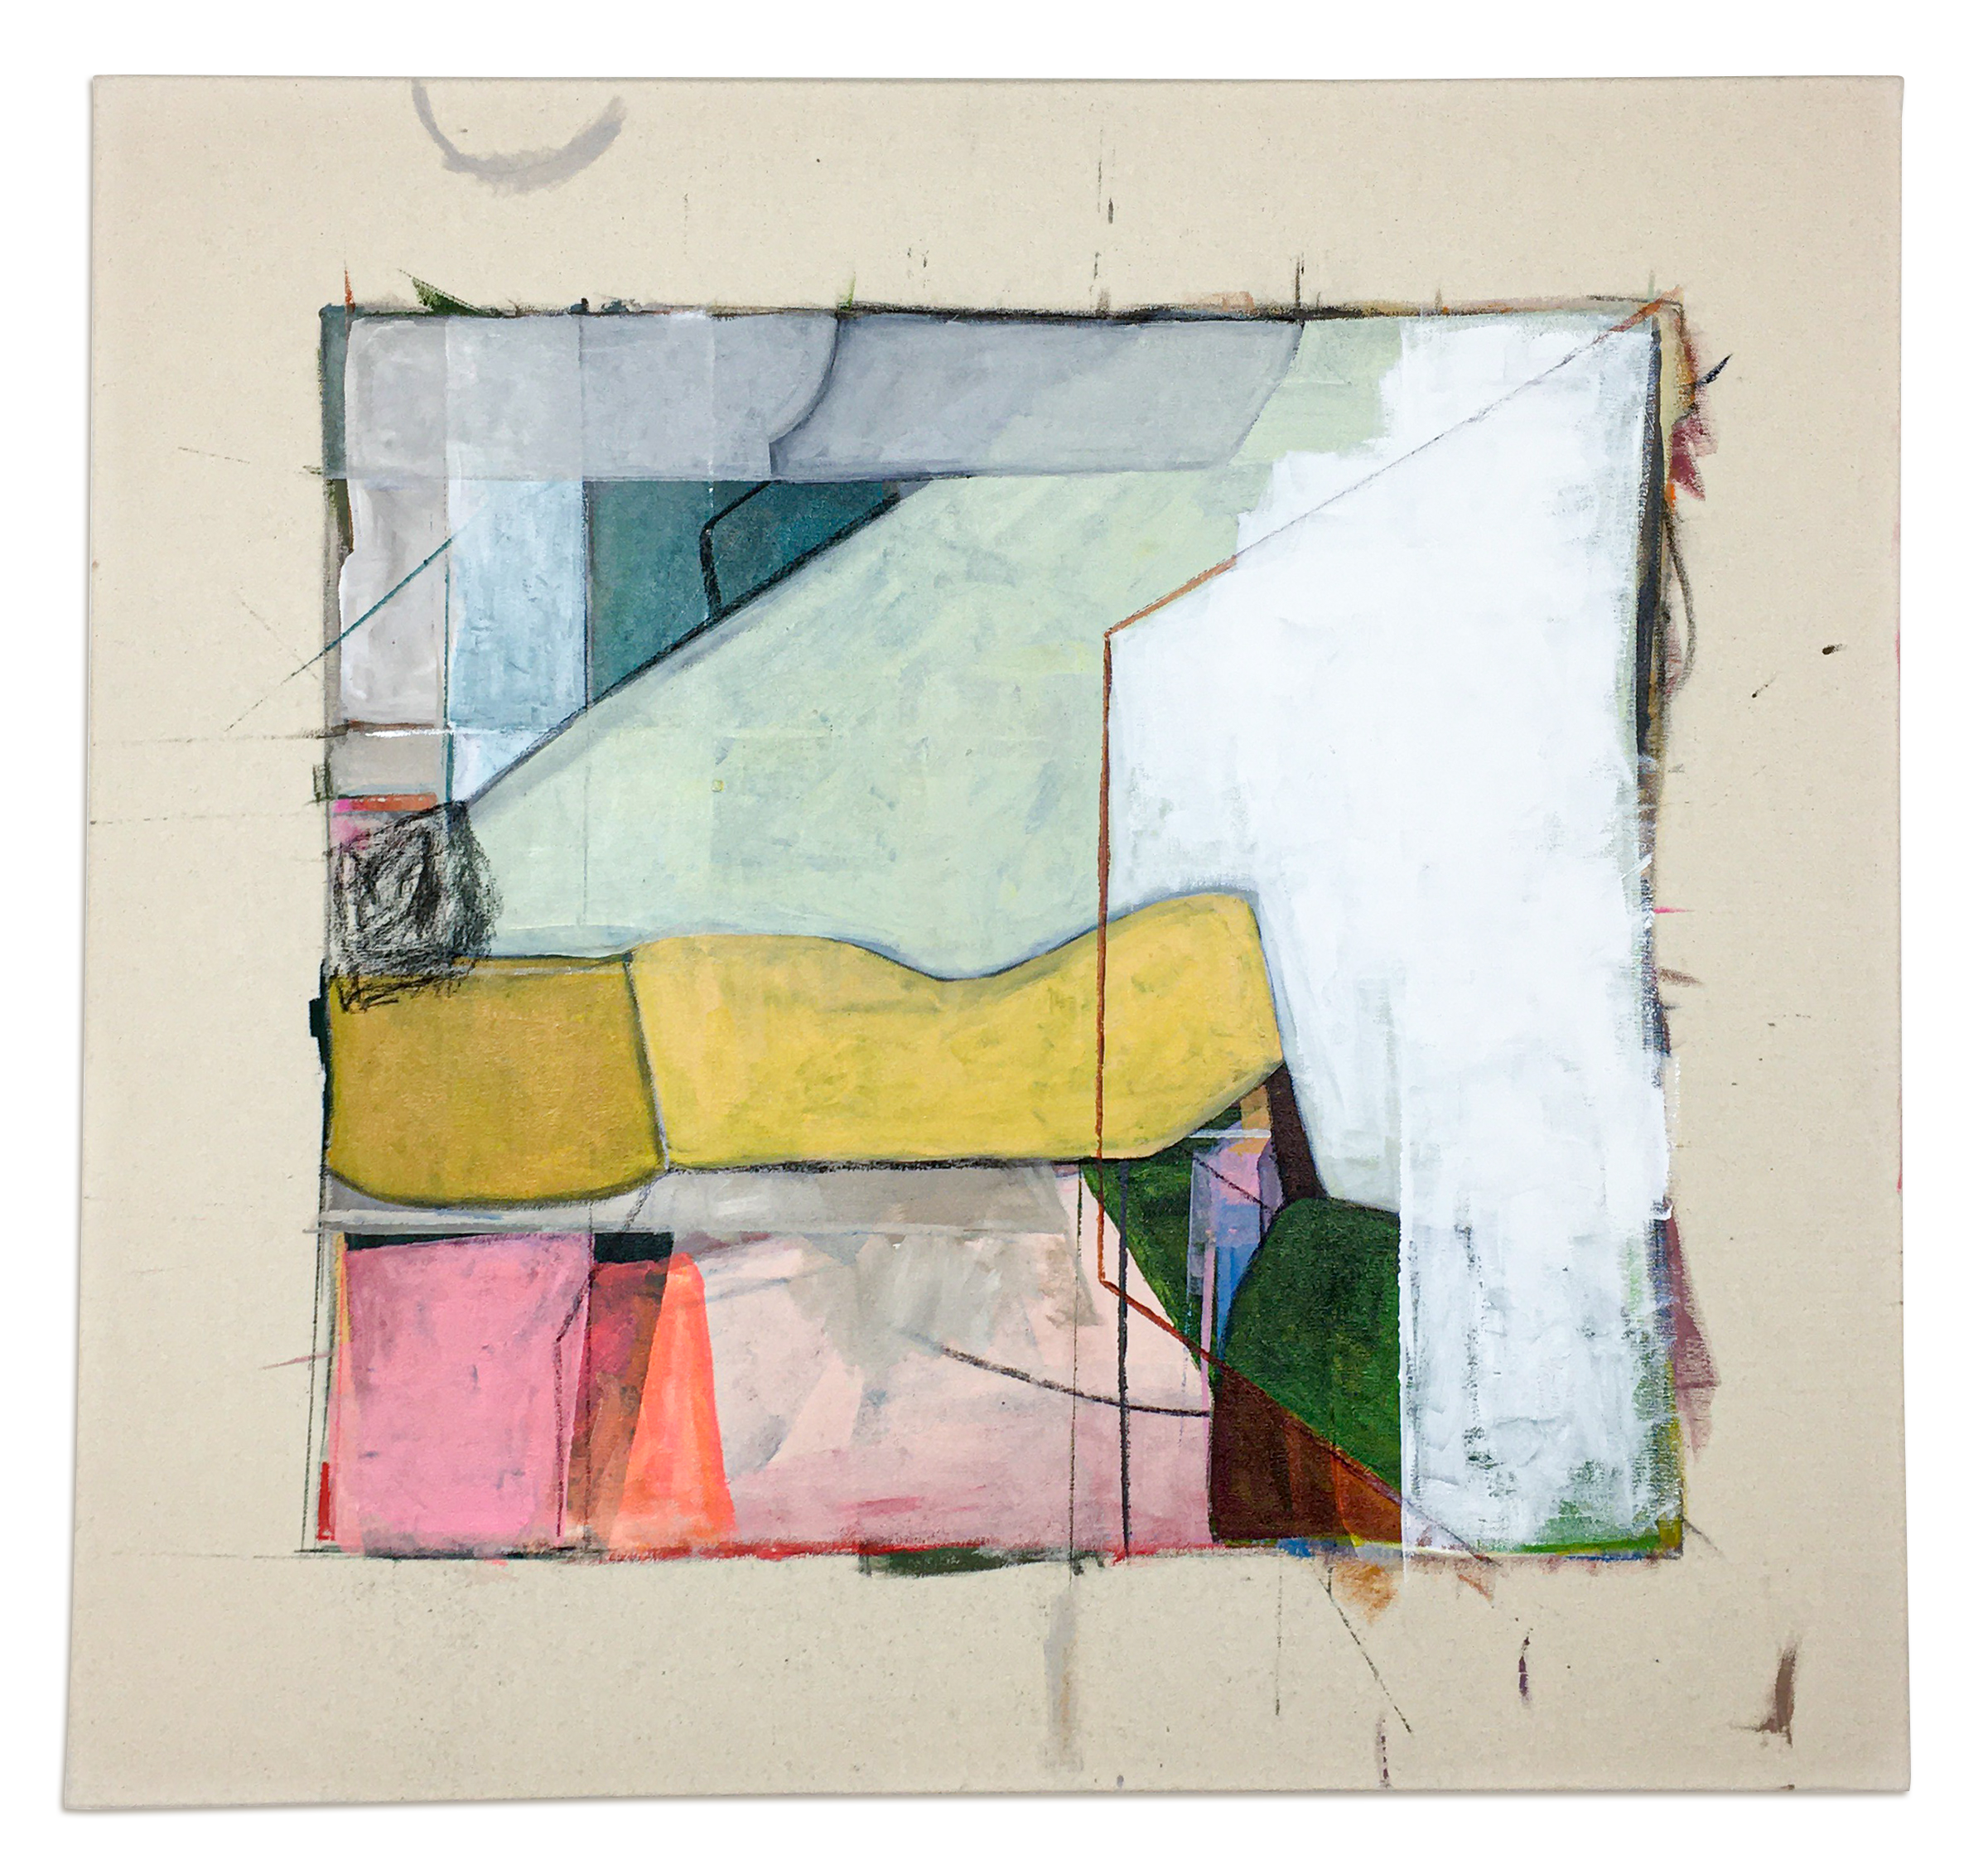 abstract painting with bigger brush strokes in yellow, pink, white, and greens